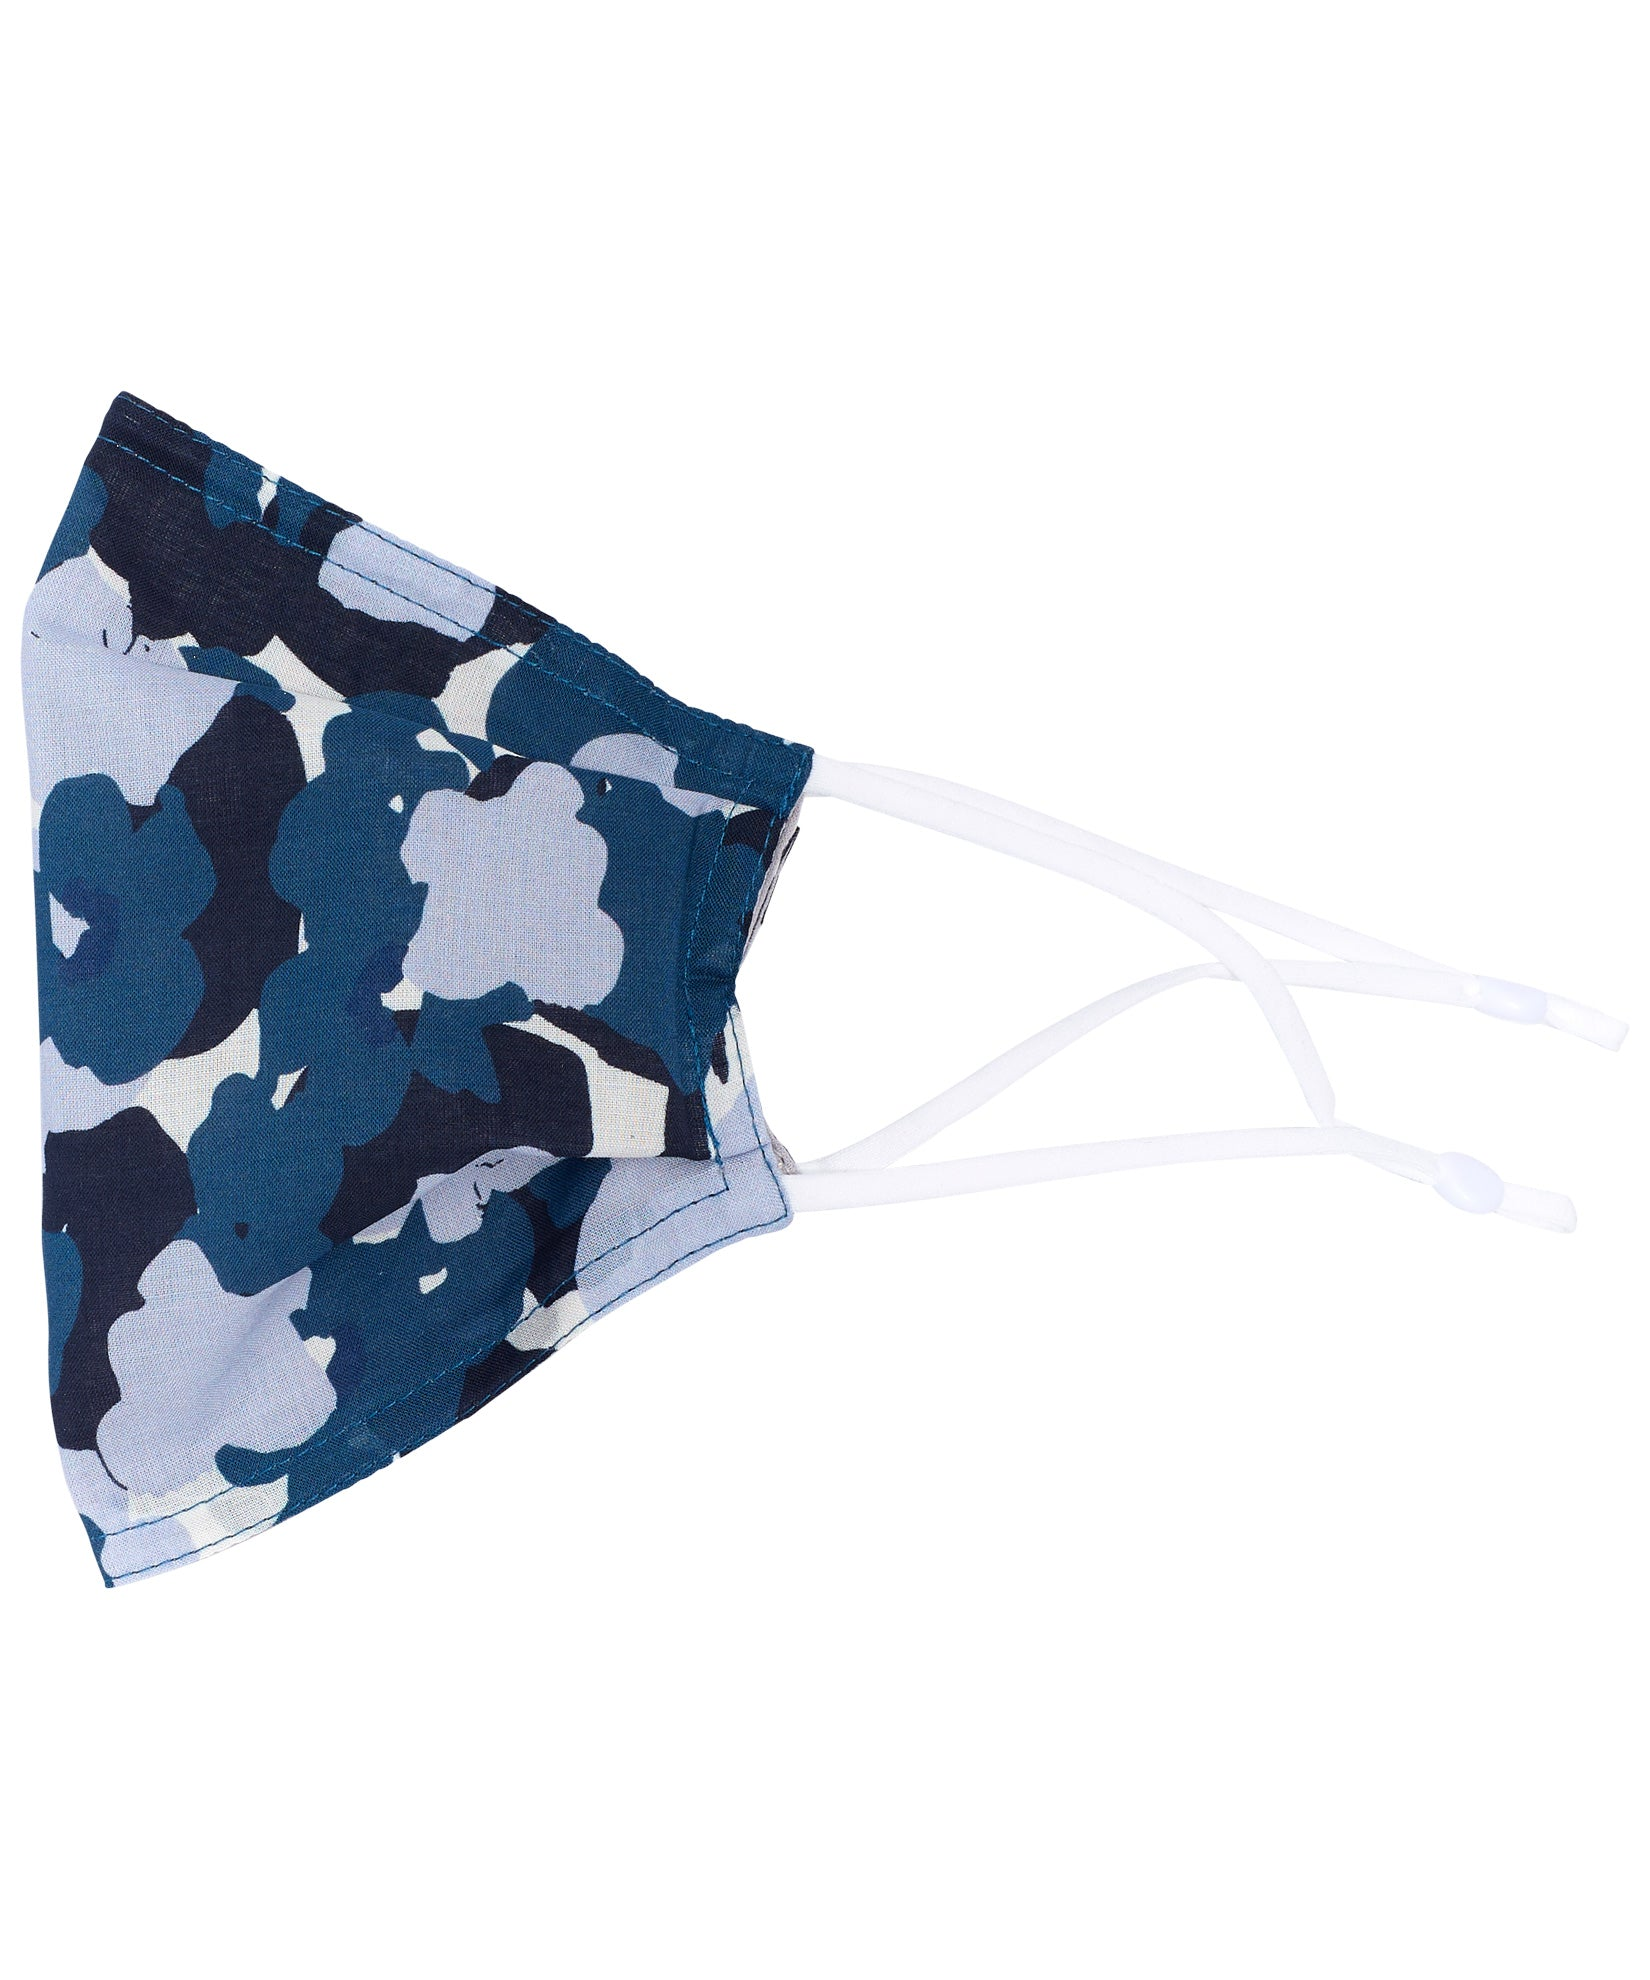 Blue Spruce - Floral Camo Cooling Mask w/Pocket